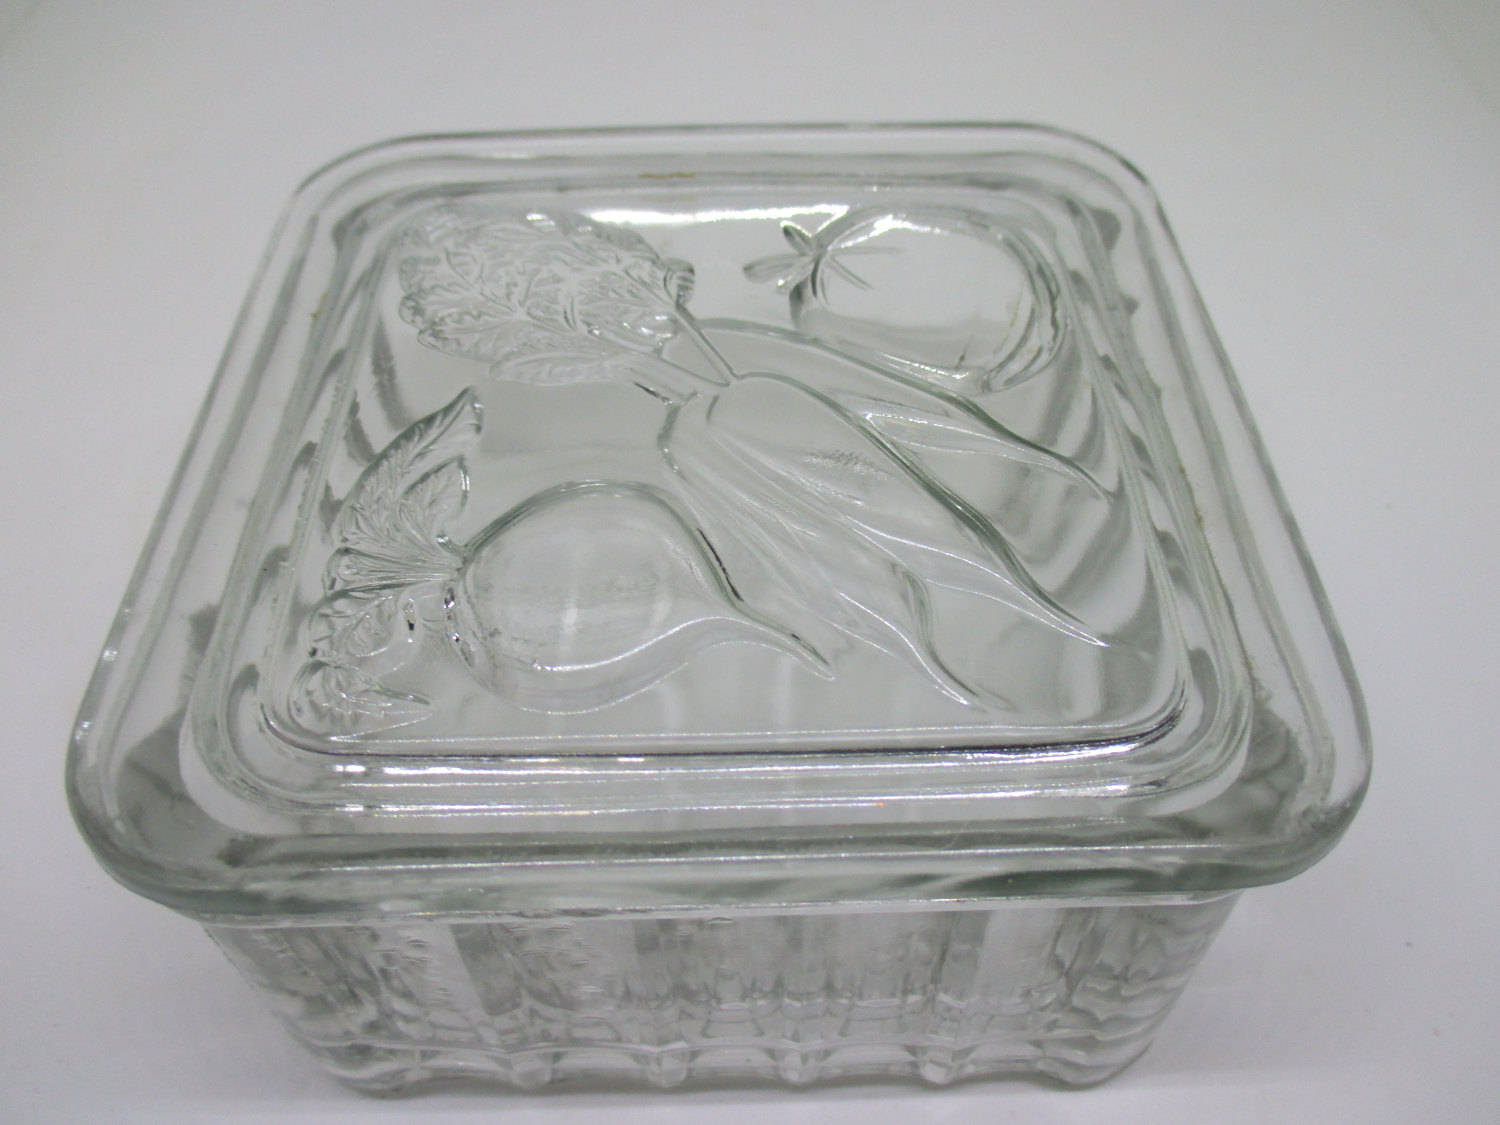 Vintage RETRO clear glass refrigerator Jar with Vegetable lid farmhouse  cottage collectible display kitchen decor